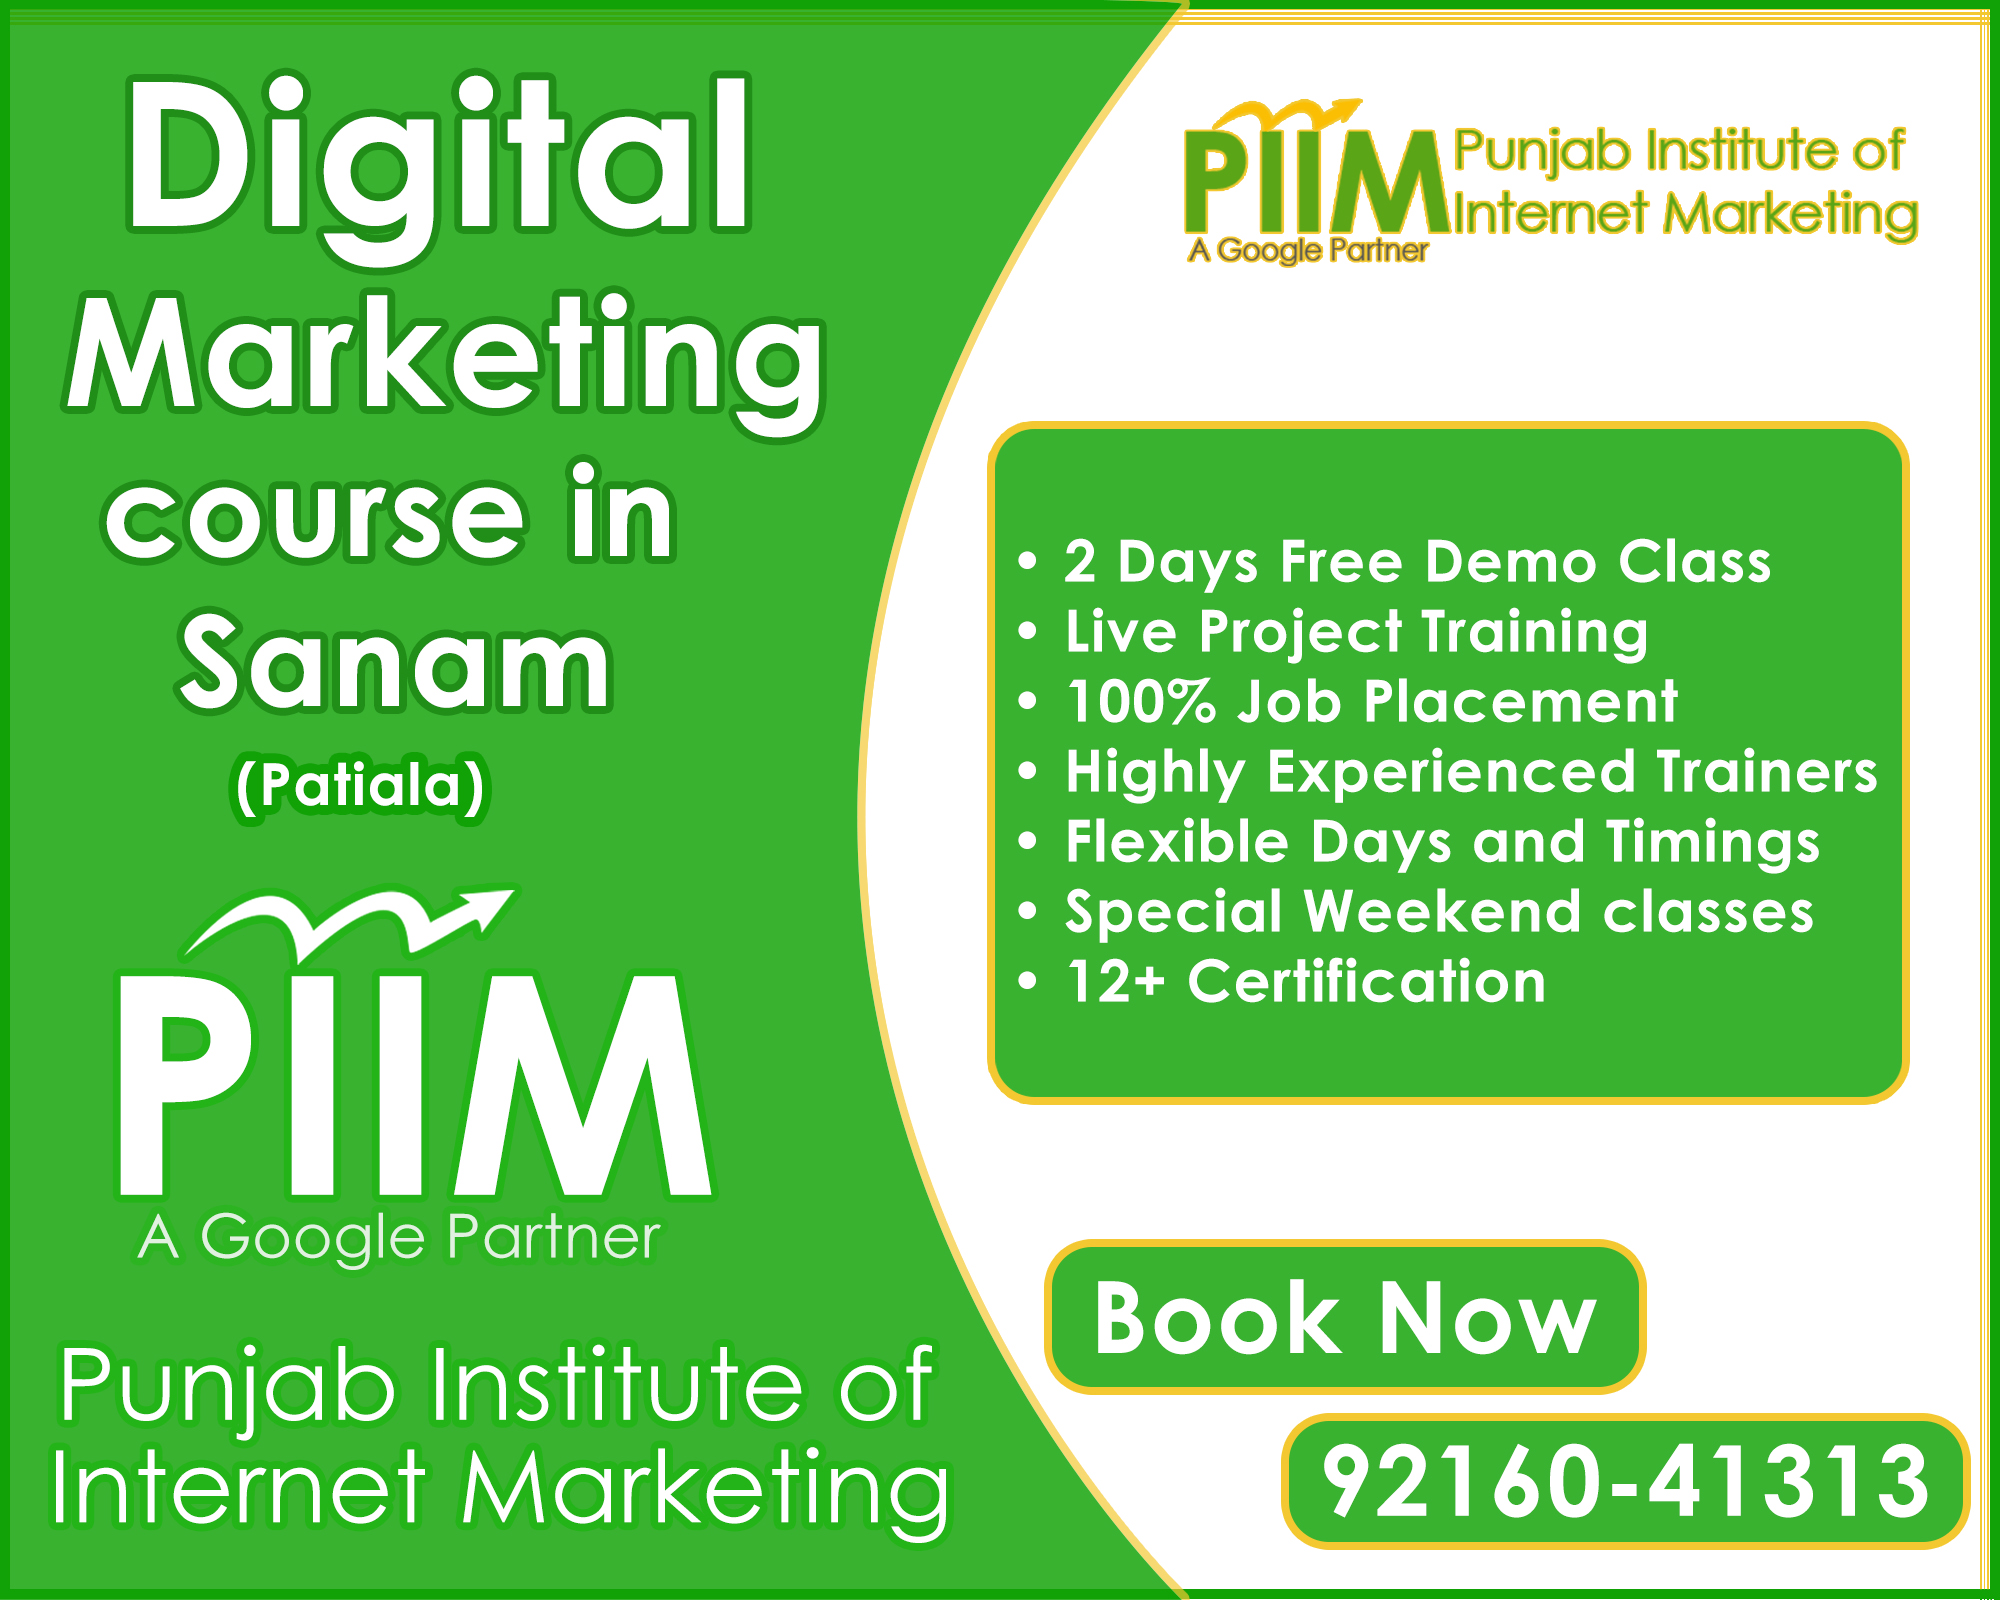 Digital Marketing Course in Sanam